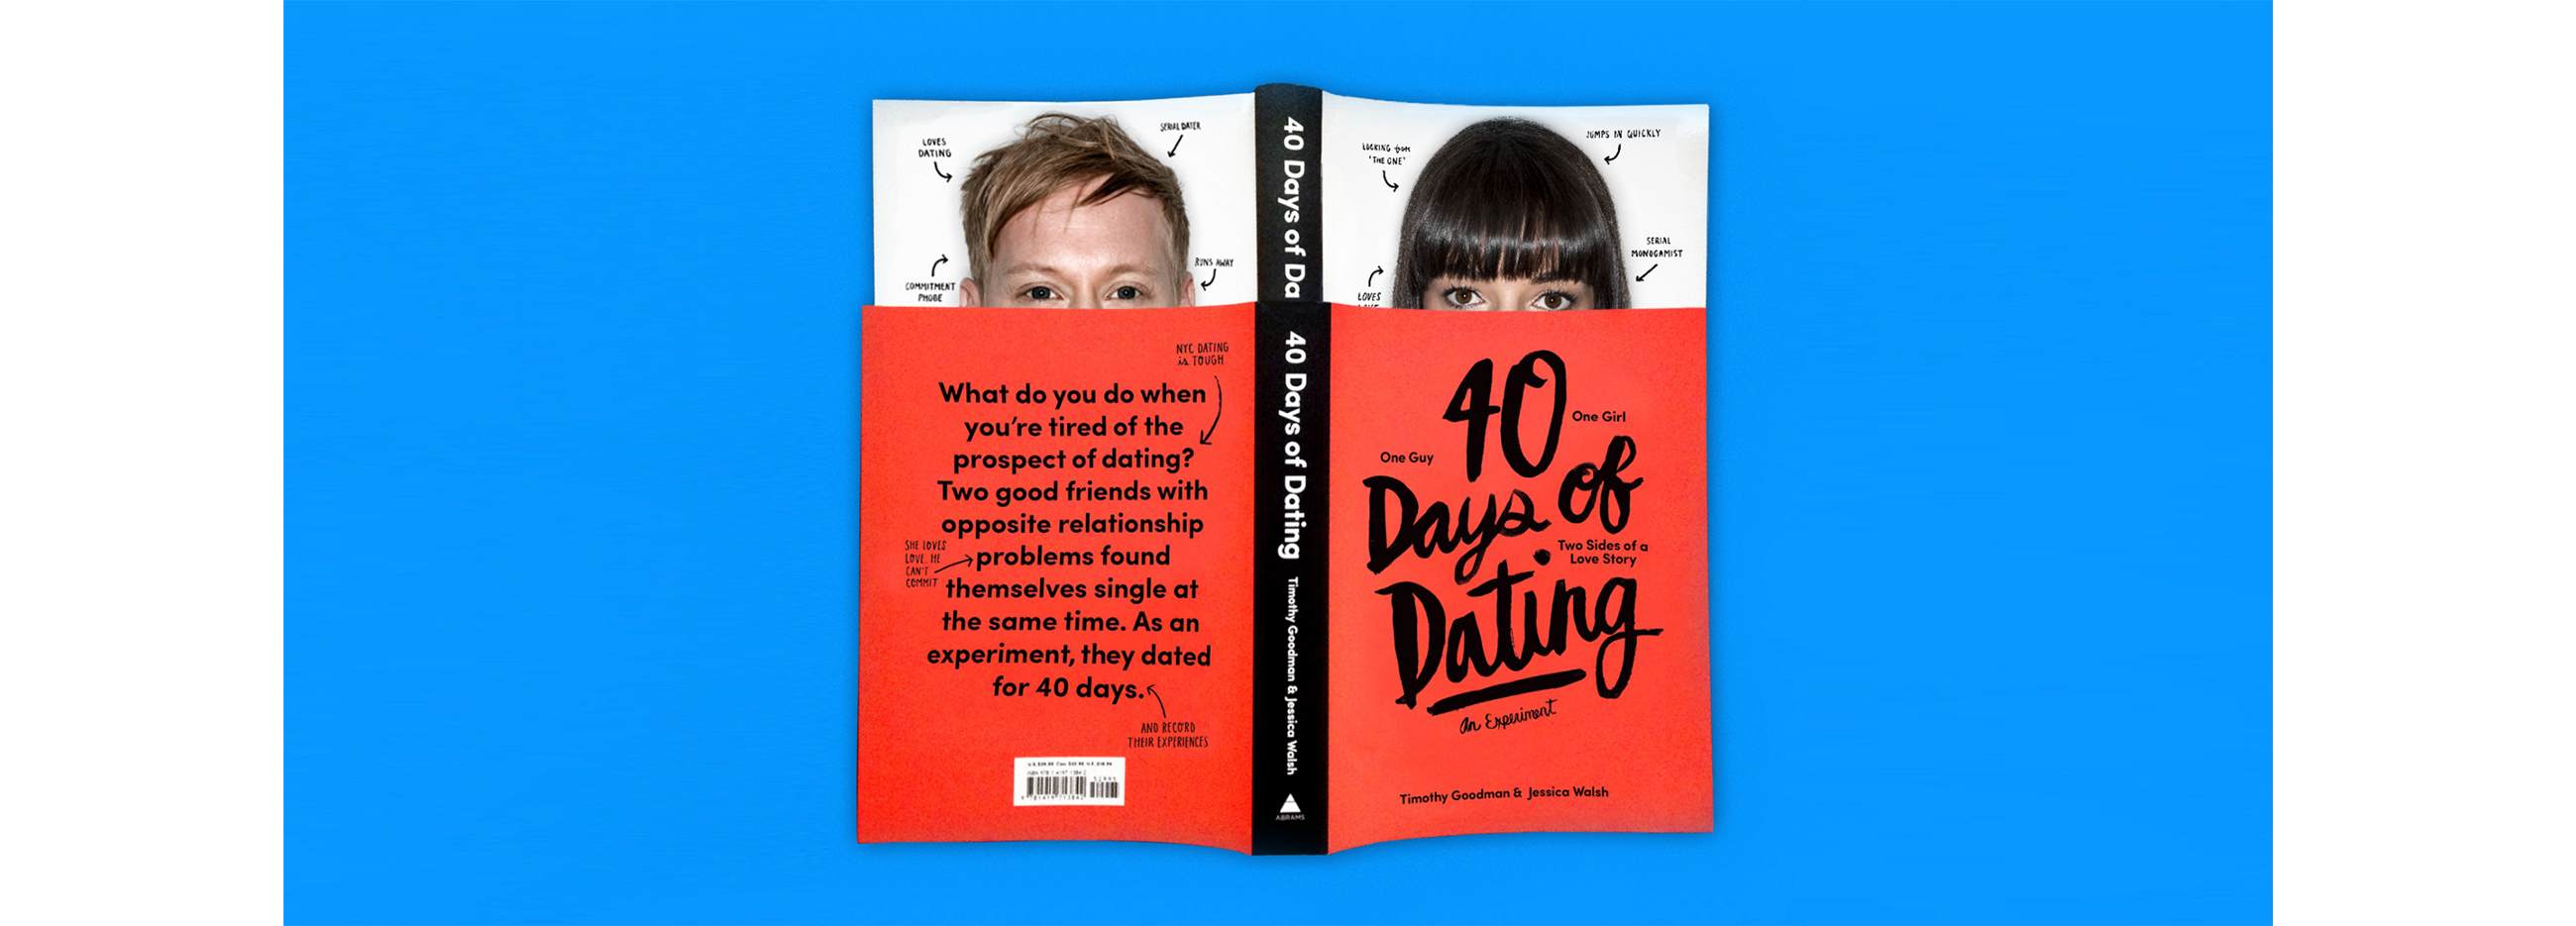 jessica walsh and timothy goodman 40 days of dating